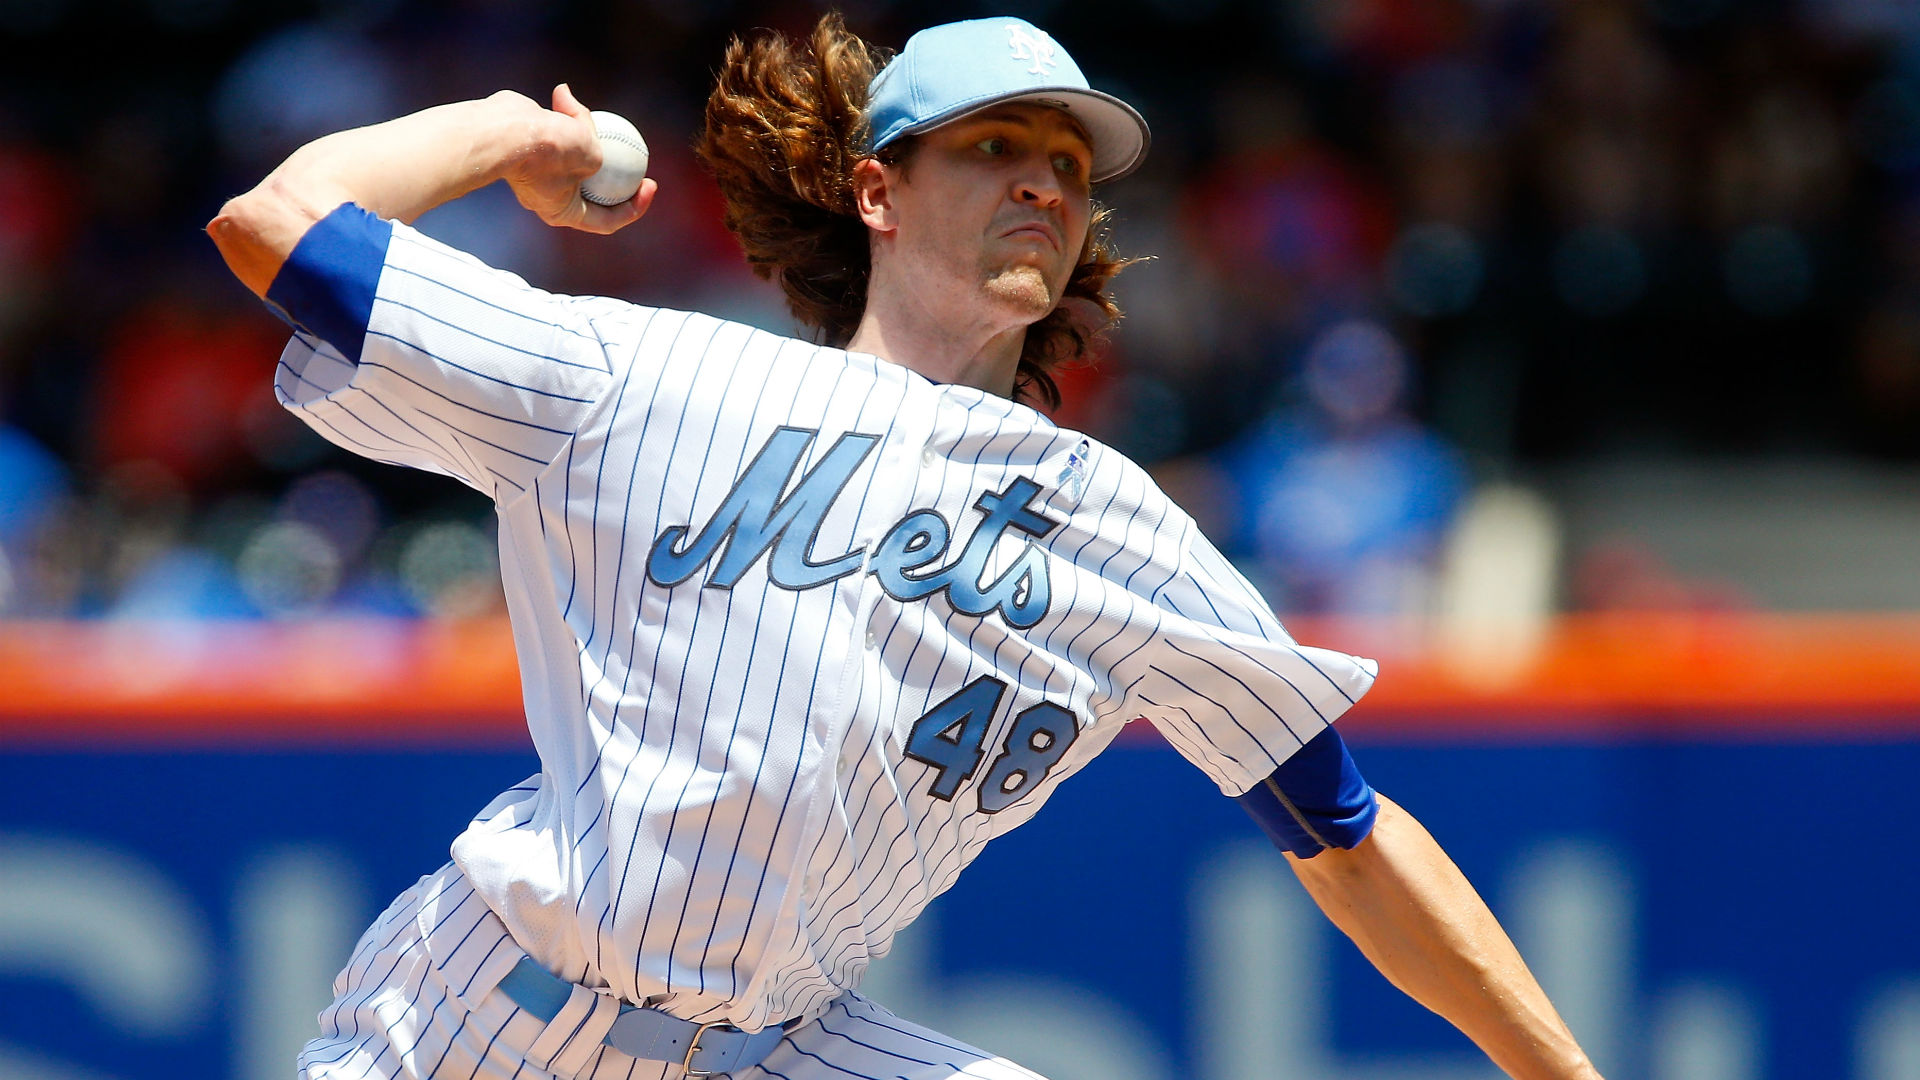 MLB wrap: Mets get walk-off win, but again give Jacob deGrom no support